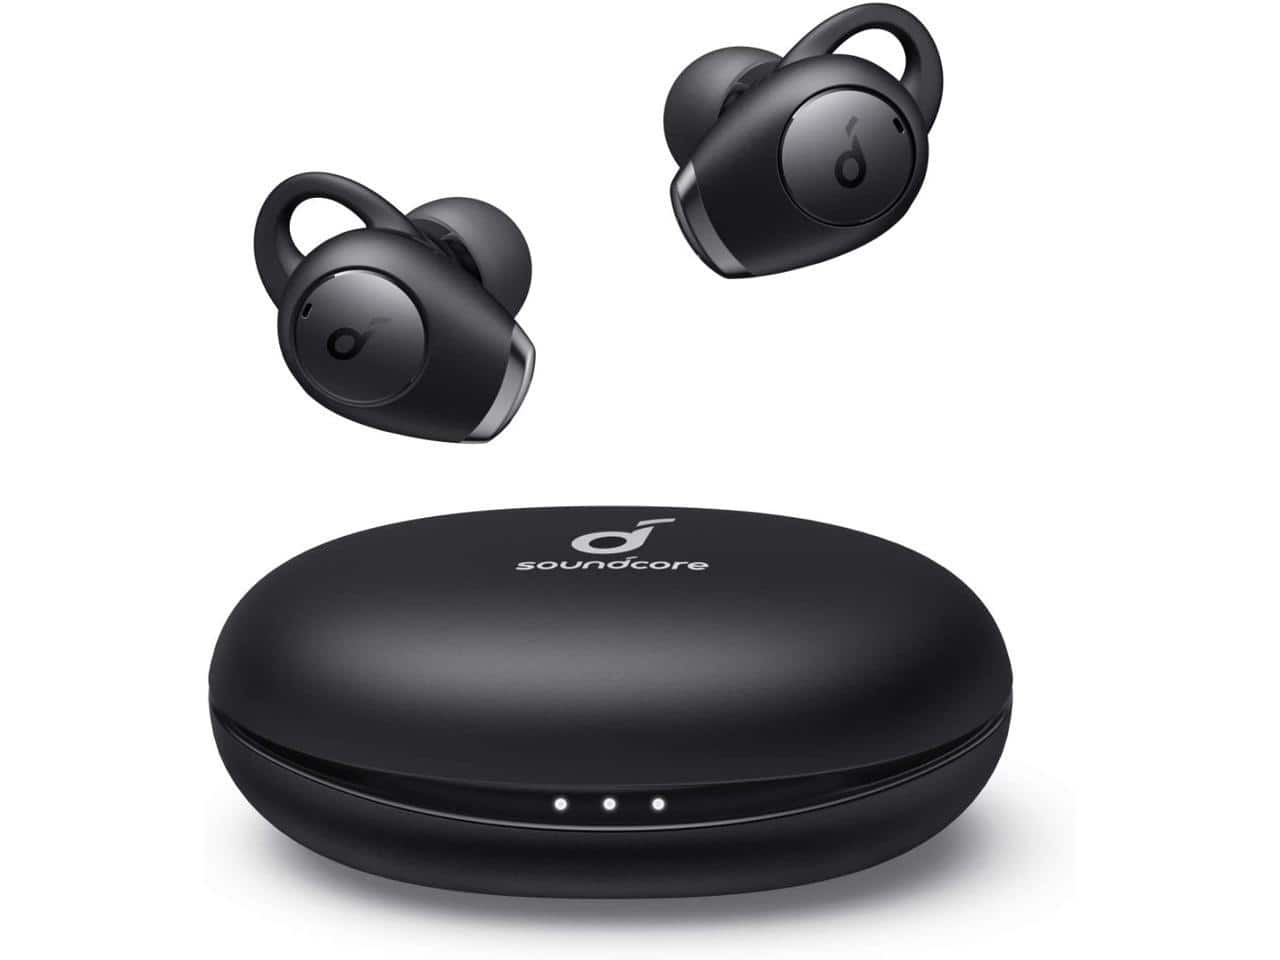 Soundcore by Anker Life A2 NC Multi-Mode Noise Cancelling Wireless Earbuds, ANC Bluetooth Earbuds $64